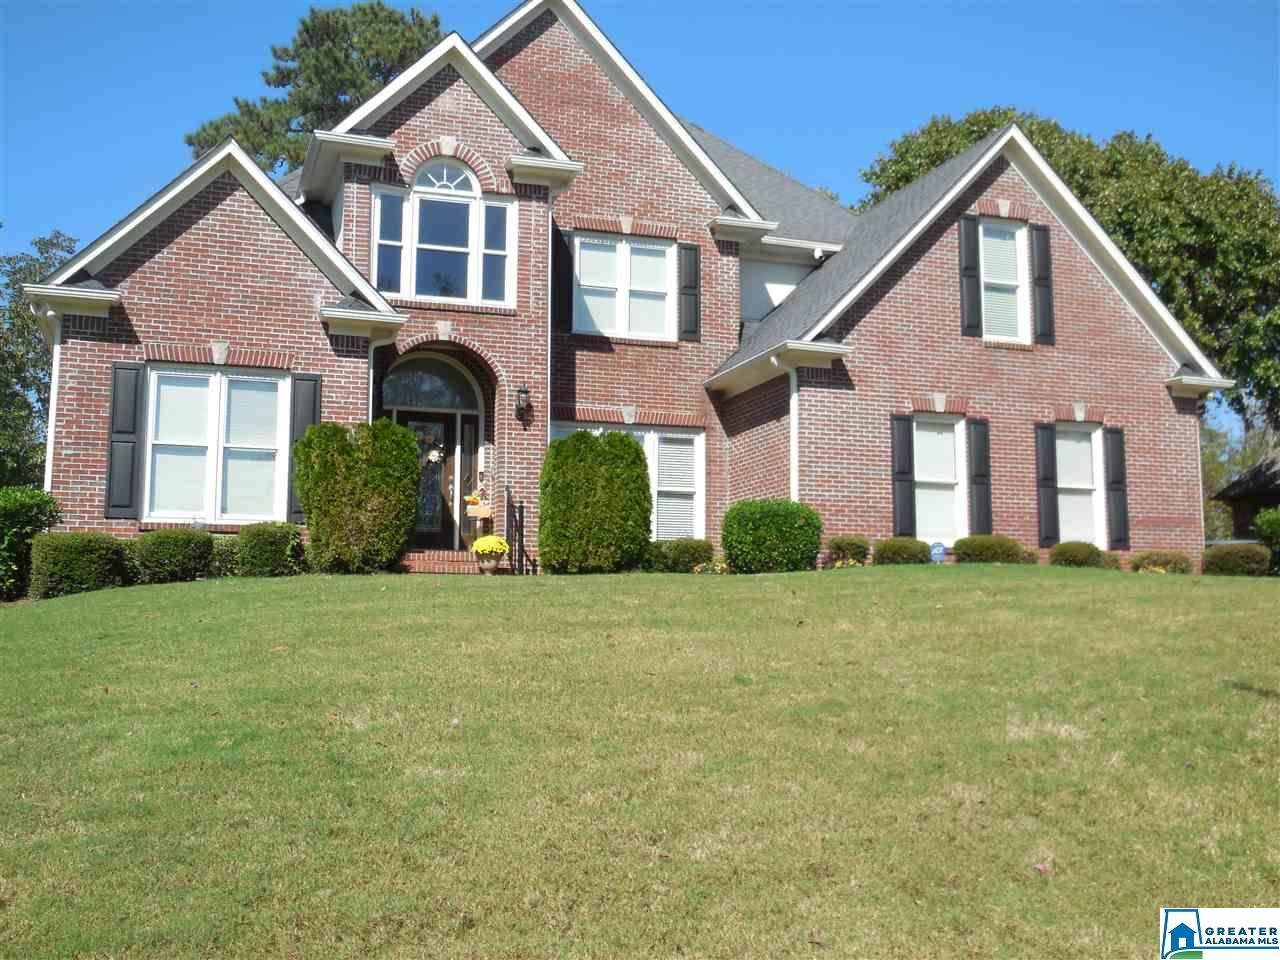 1685 Lake Cyrus Club Dr - Photo 1